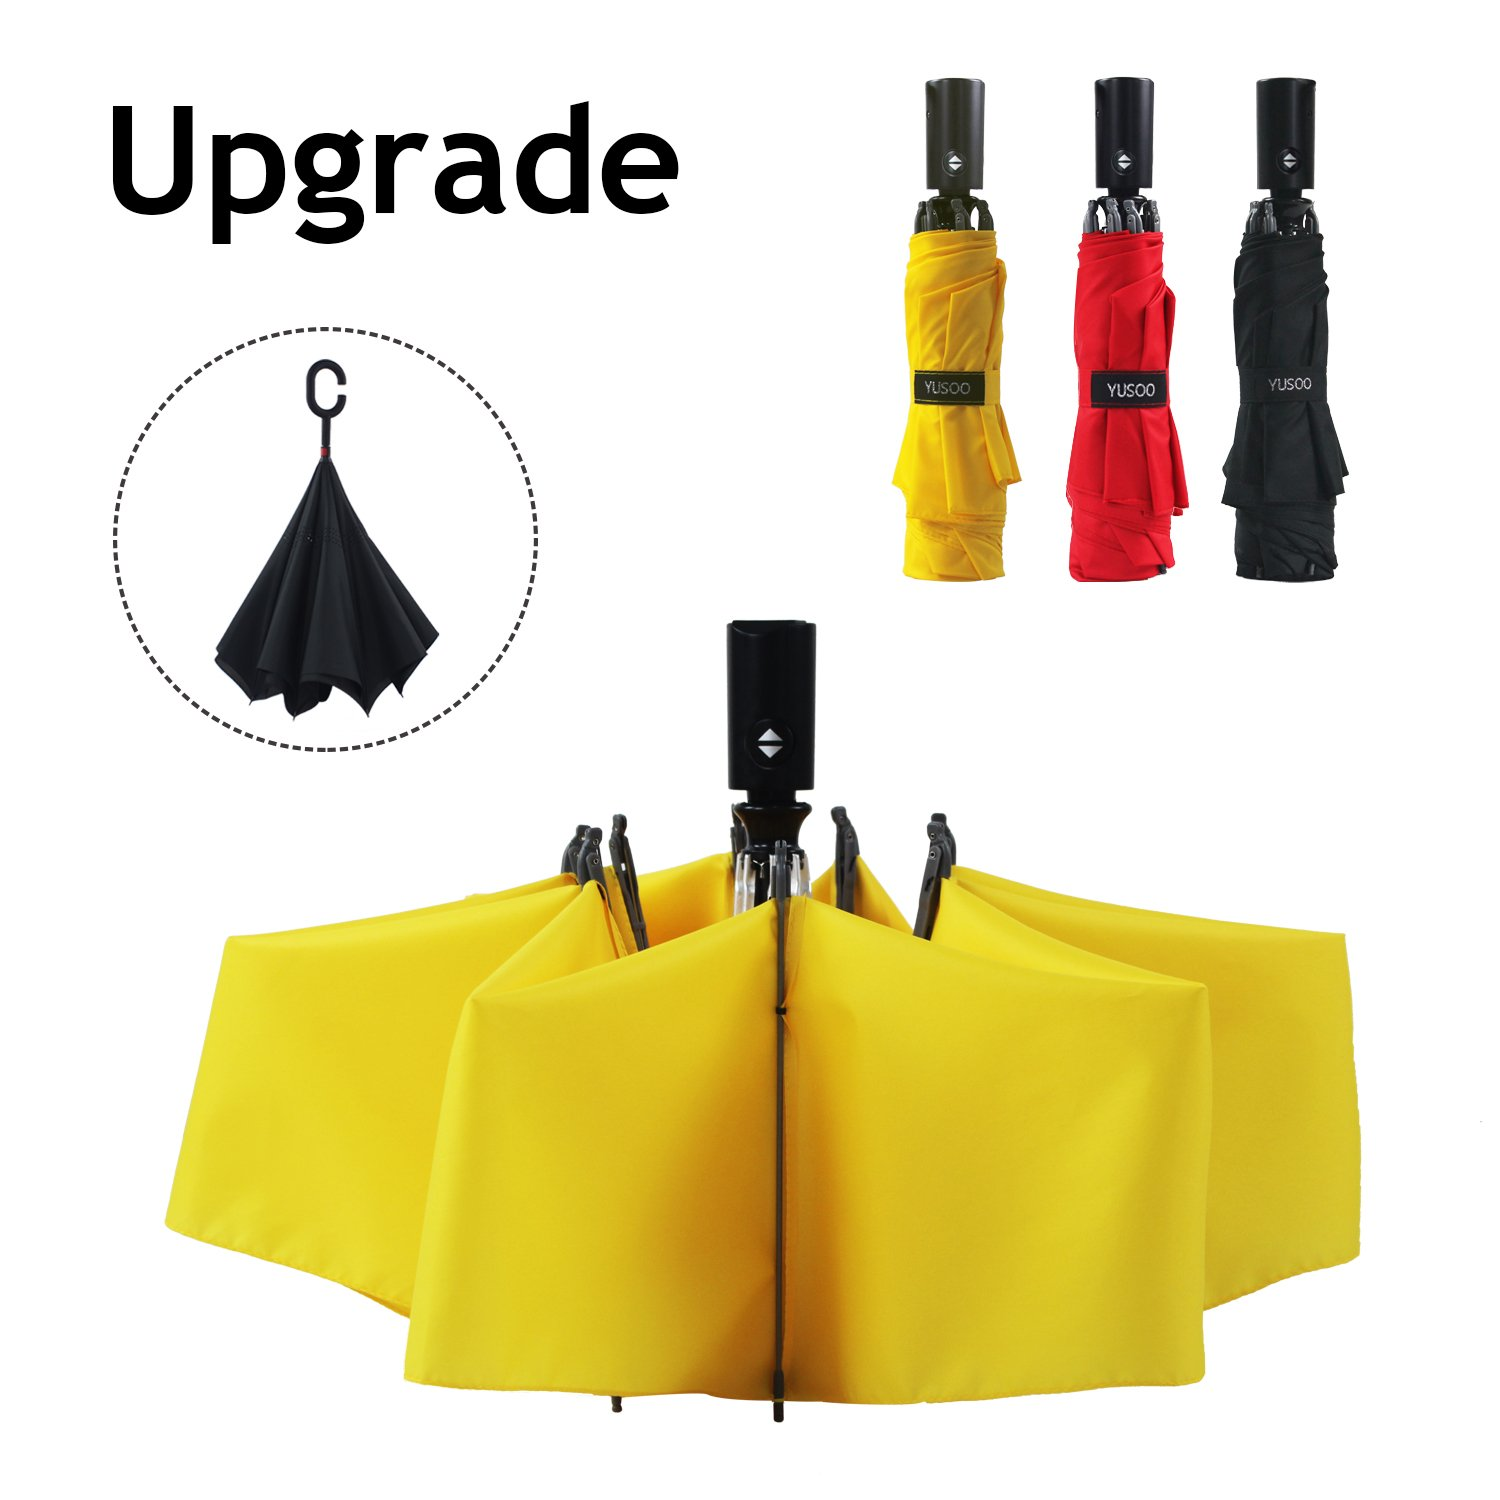 YUSOO Automatic Compact Travel Umbrella with Reverse,210T Auto Open Close Folding Strong Windproof UV Umbrella For Women Men,Yellow